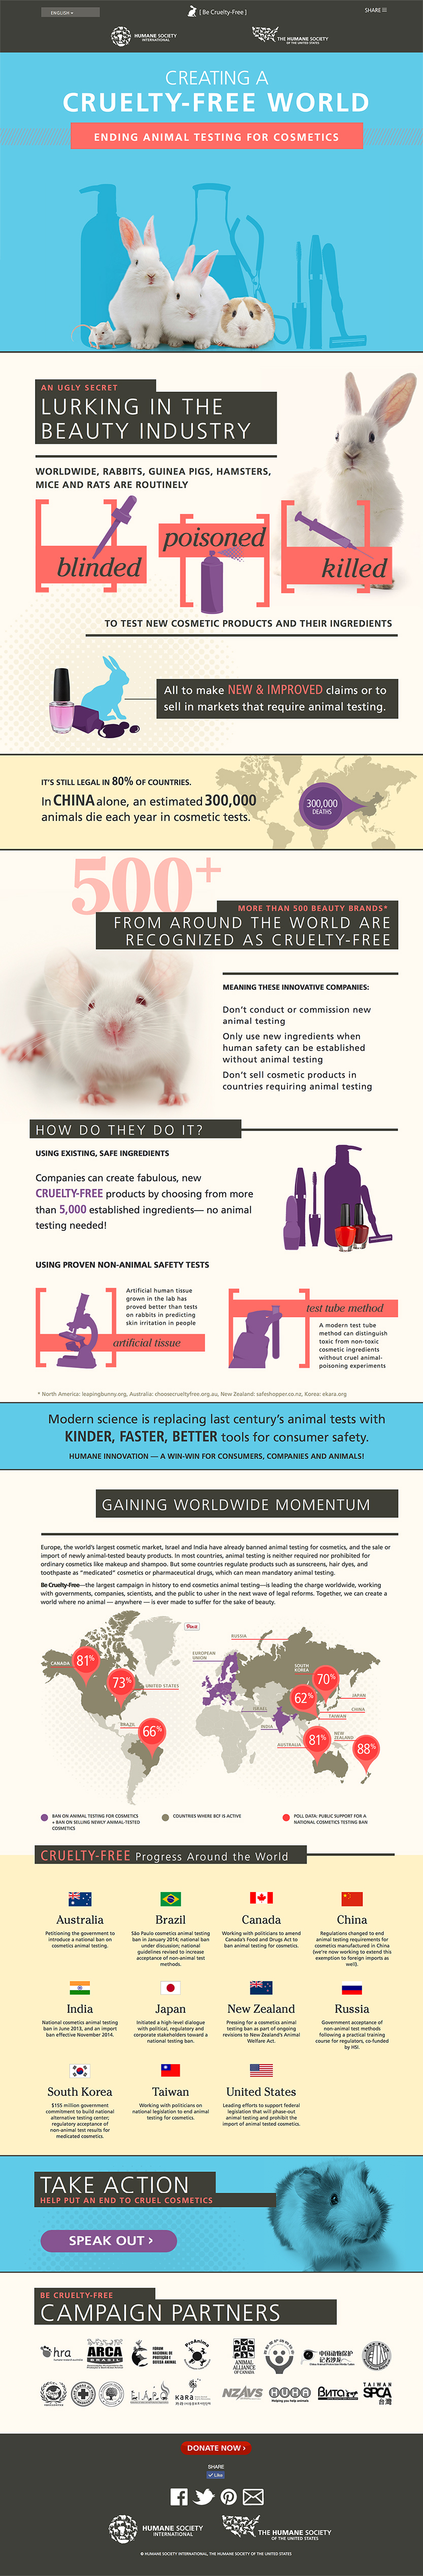 Be Cruelty-Free Infographic